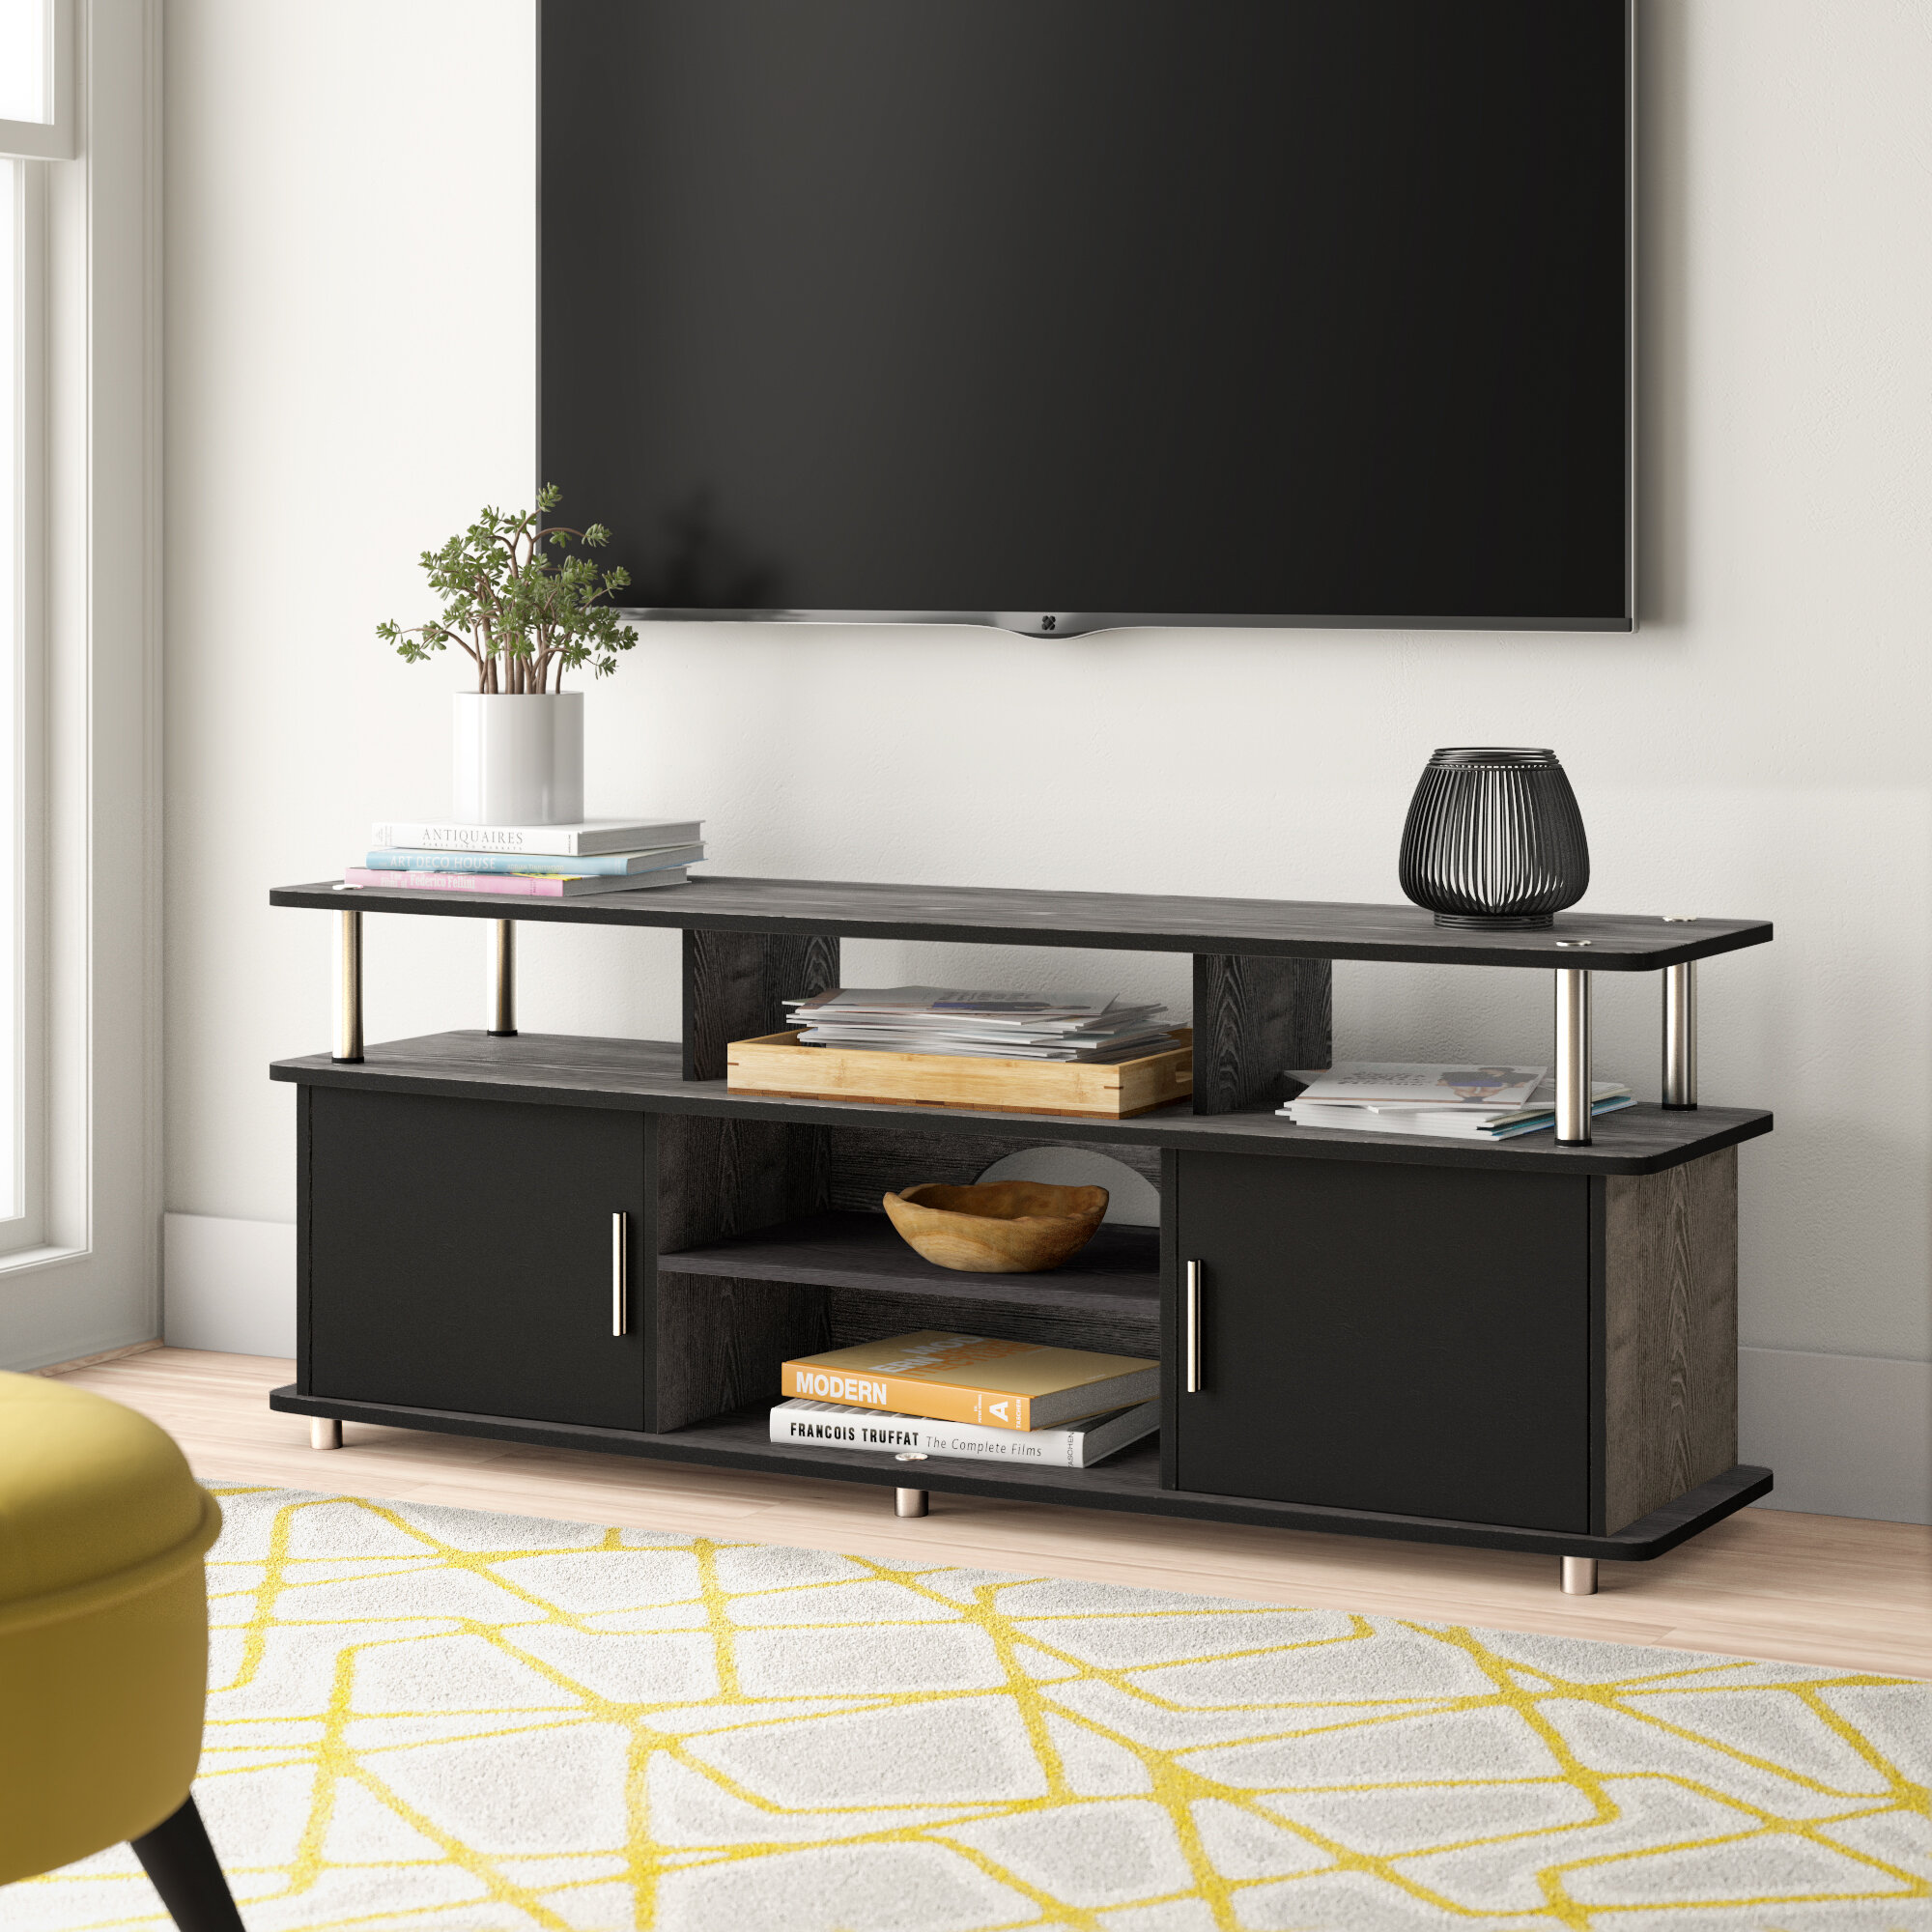 Edwin TV Stand for TVs up to 65 inches